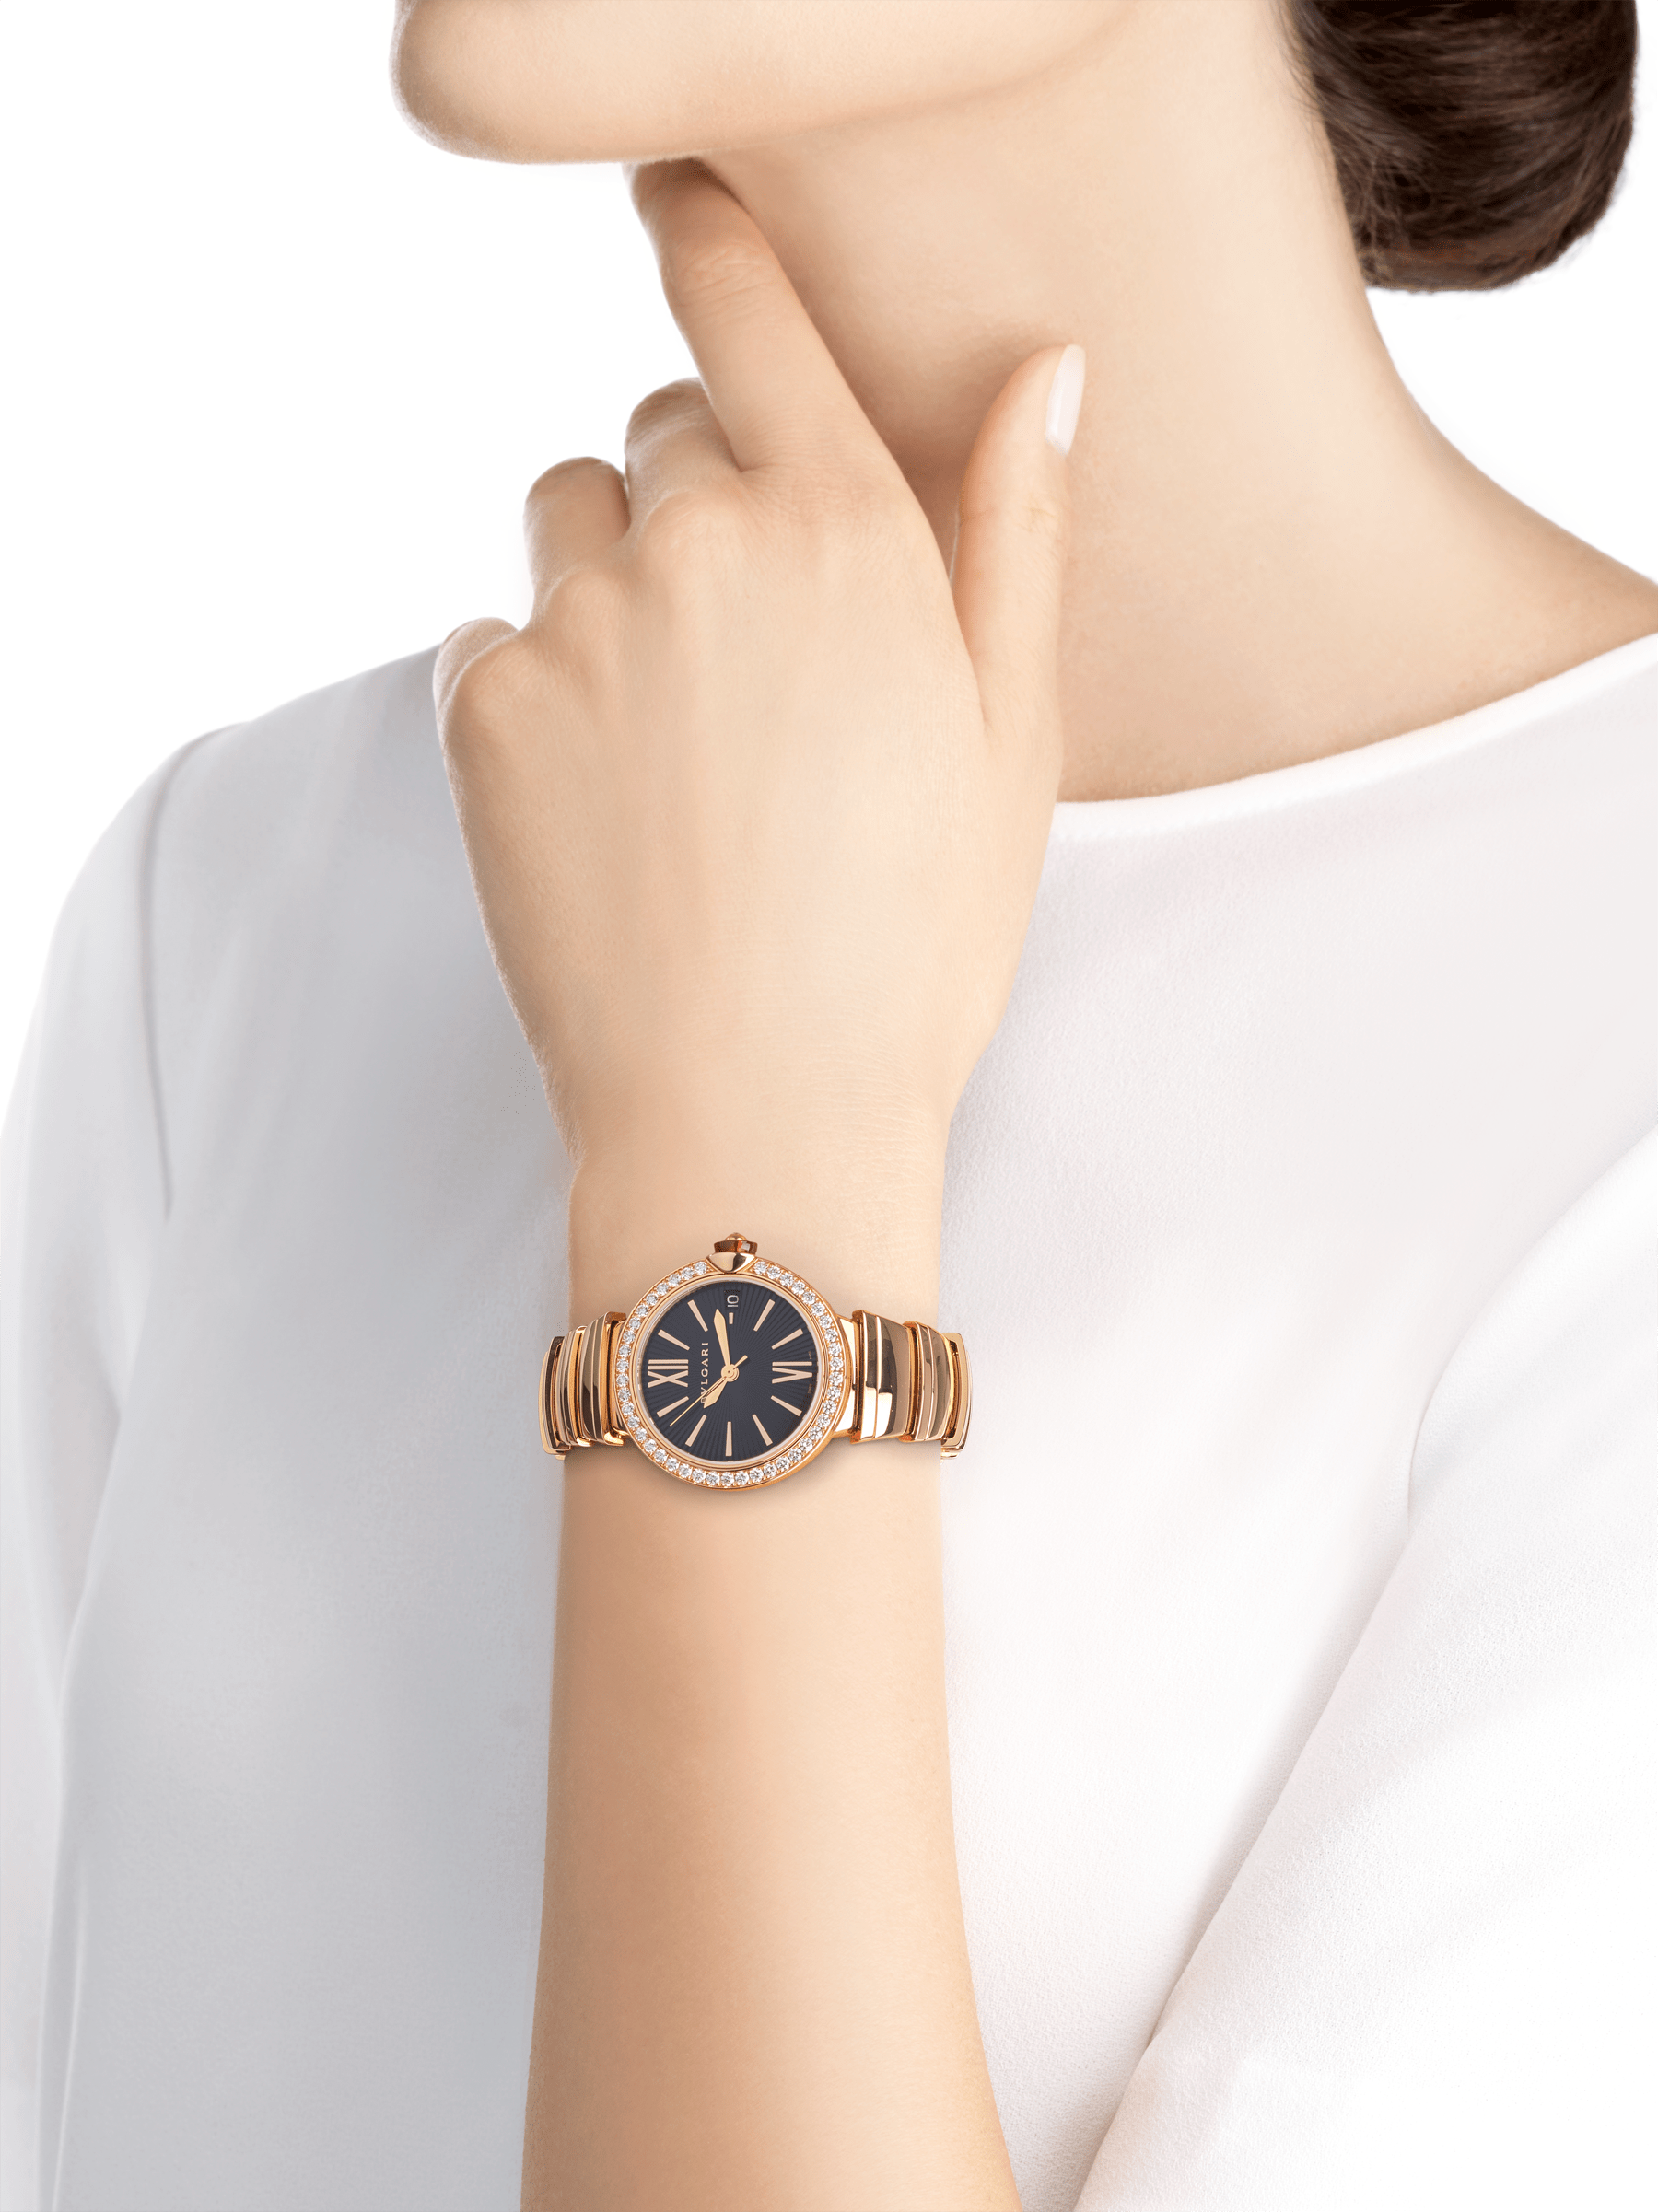 LVCEA watch with 18 kt rose gold and brilliant-cut diamond case, black opaline dial and 18 kt rose gold bracelet. 102260 image 4